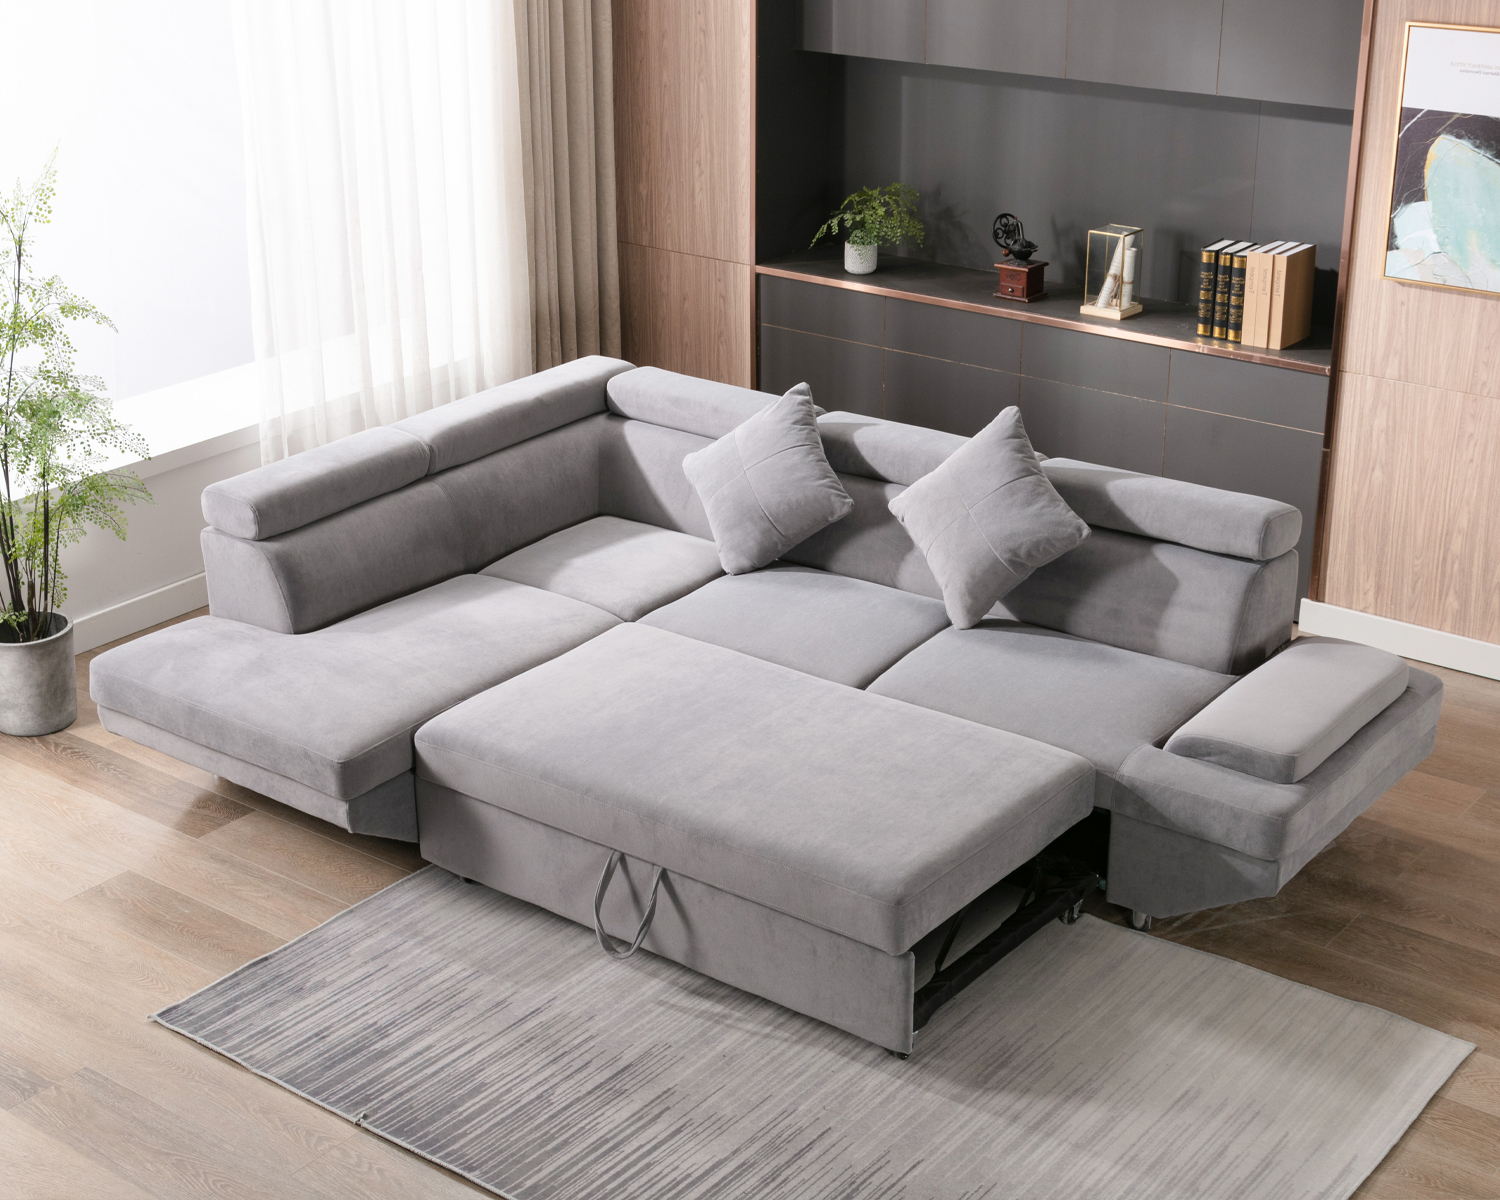 Sleeper Sofa Bed Futon Sofa Bed Sectional Sofasofas For Throughout Living Room Sofa And Chair Sets (View 7 of 15)